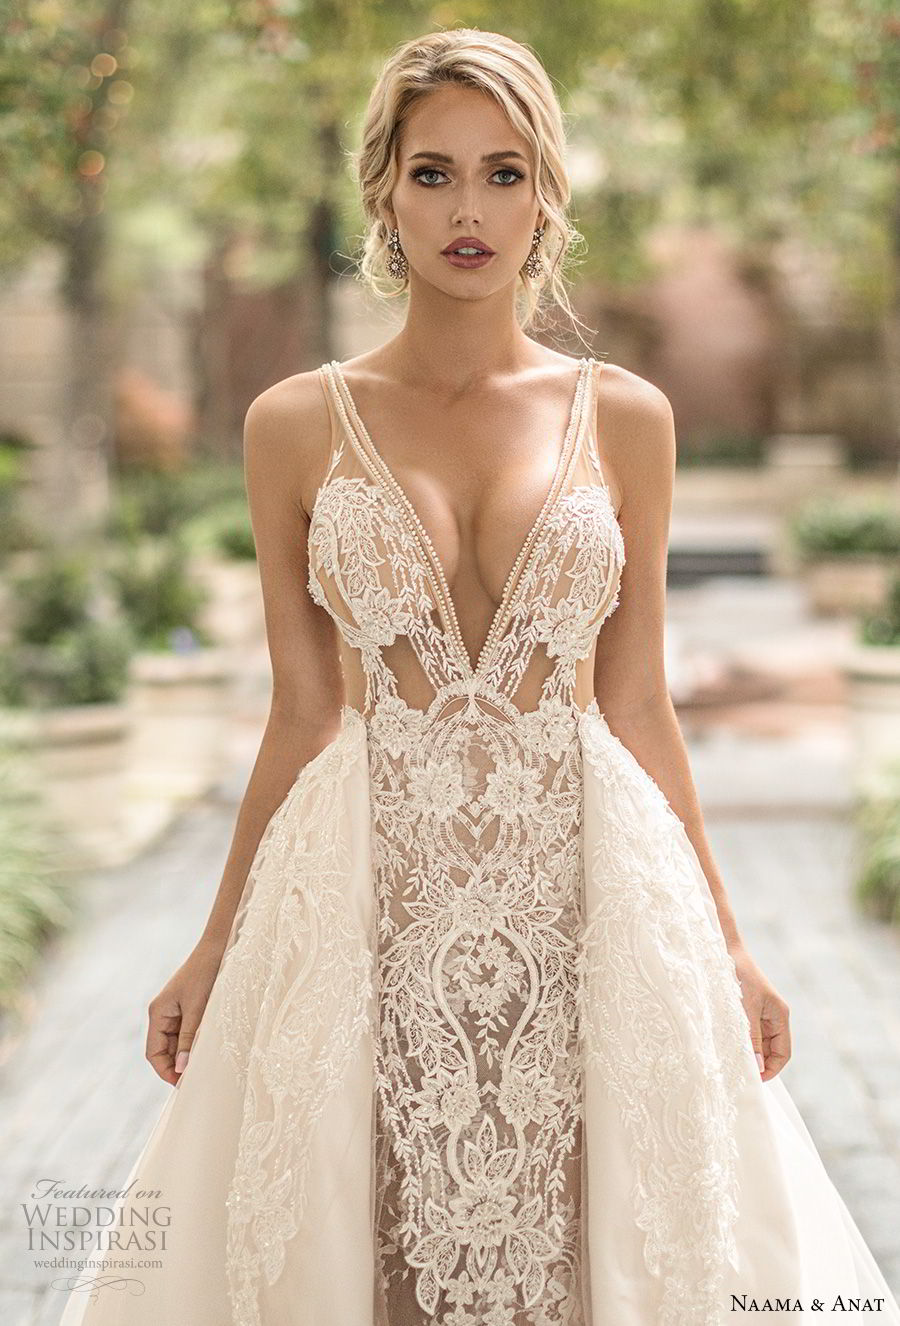 naama anat spring 2019 bridal sleeveless with strap deep v neck full embellishment sexy glamorous sheath wedding dress a line overskirt low open back chapel train (4) zv